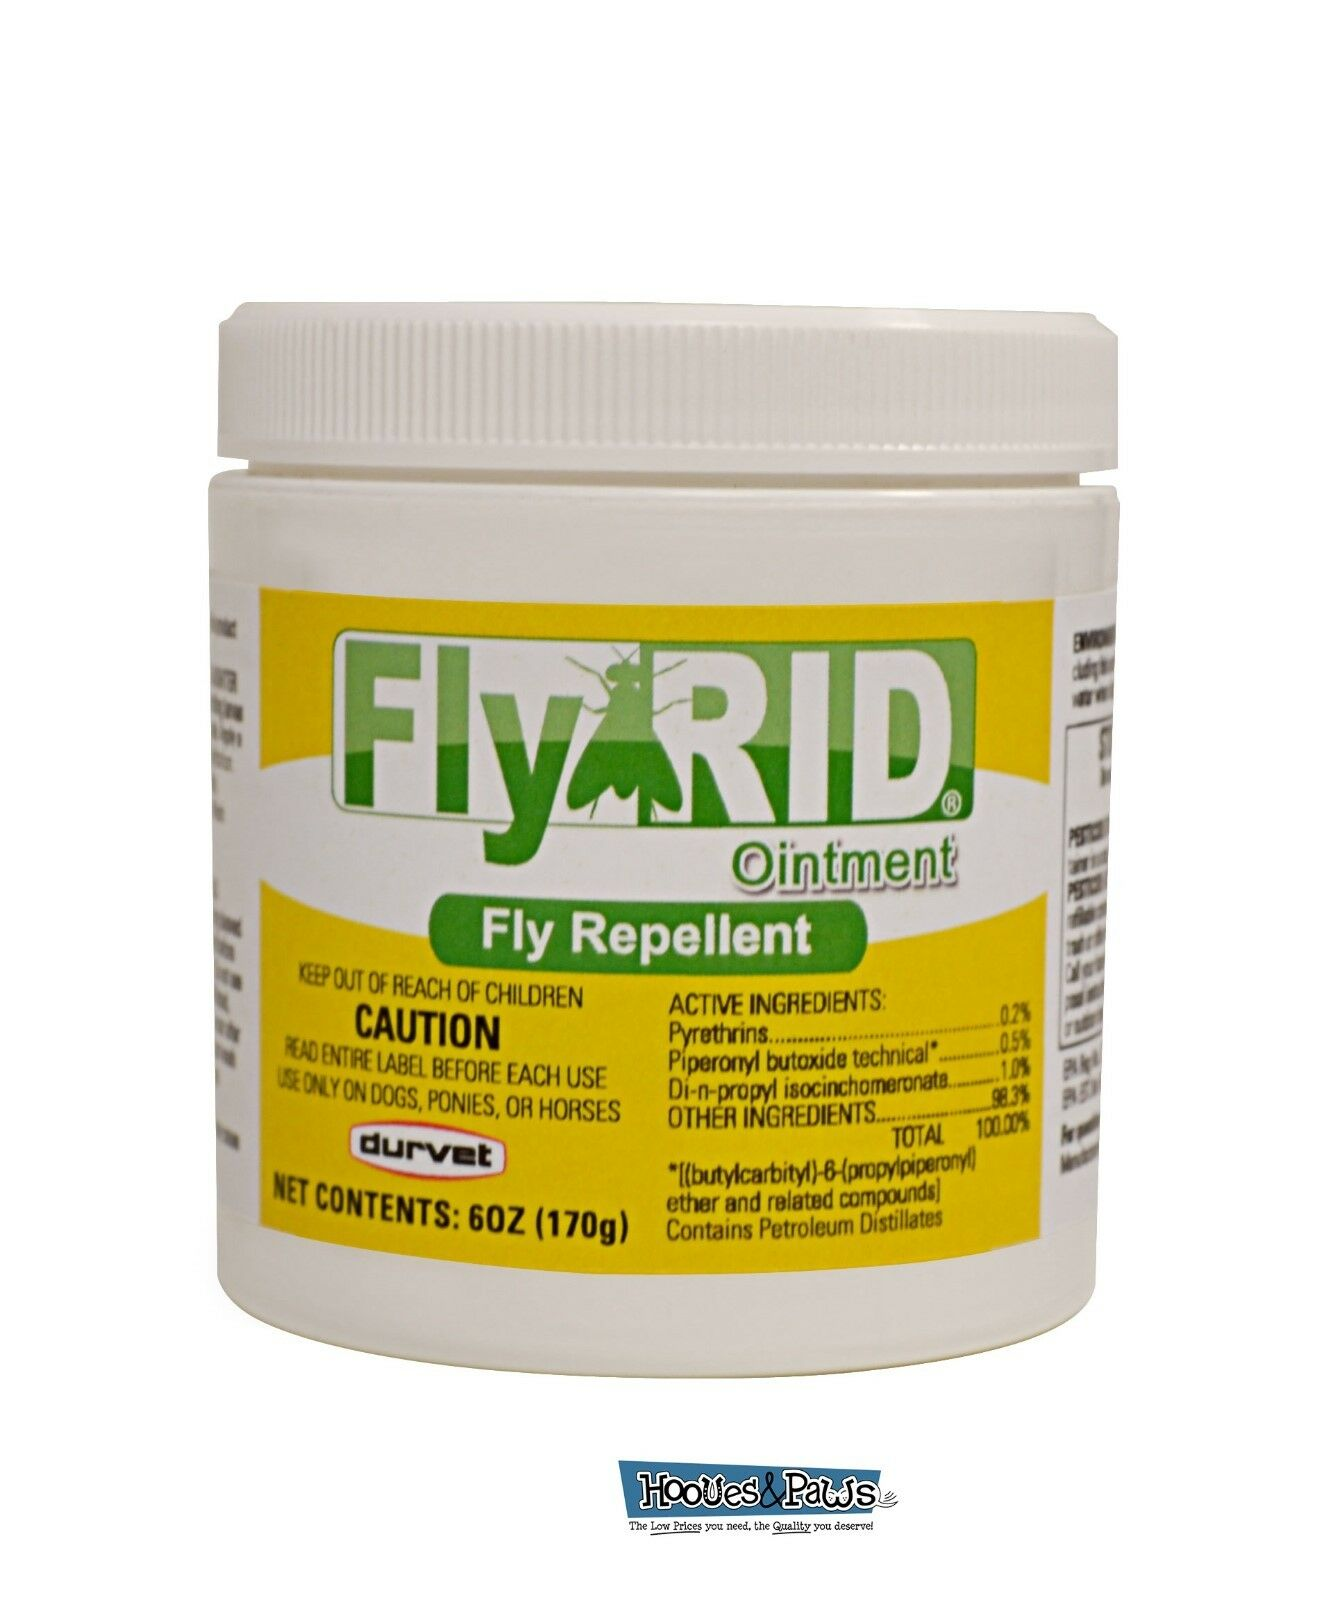 Durvet Fly Rid Insecticide Ointment Fly Repellent 6oz For Dogs and Horses